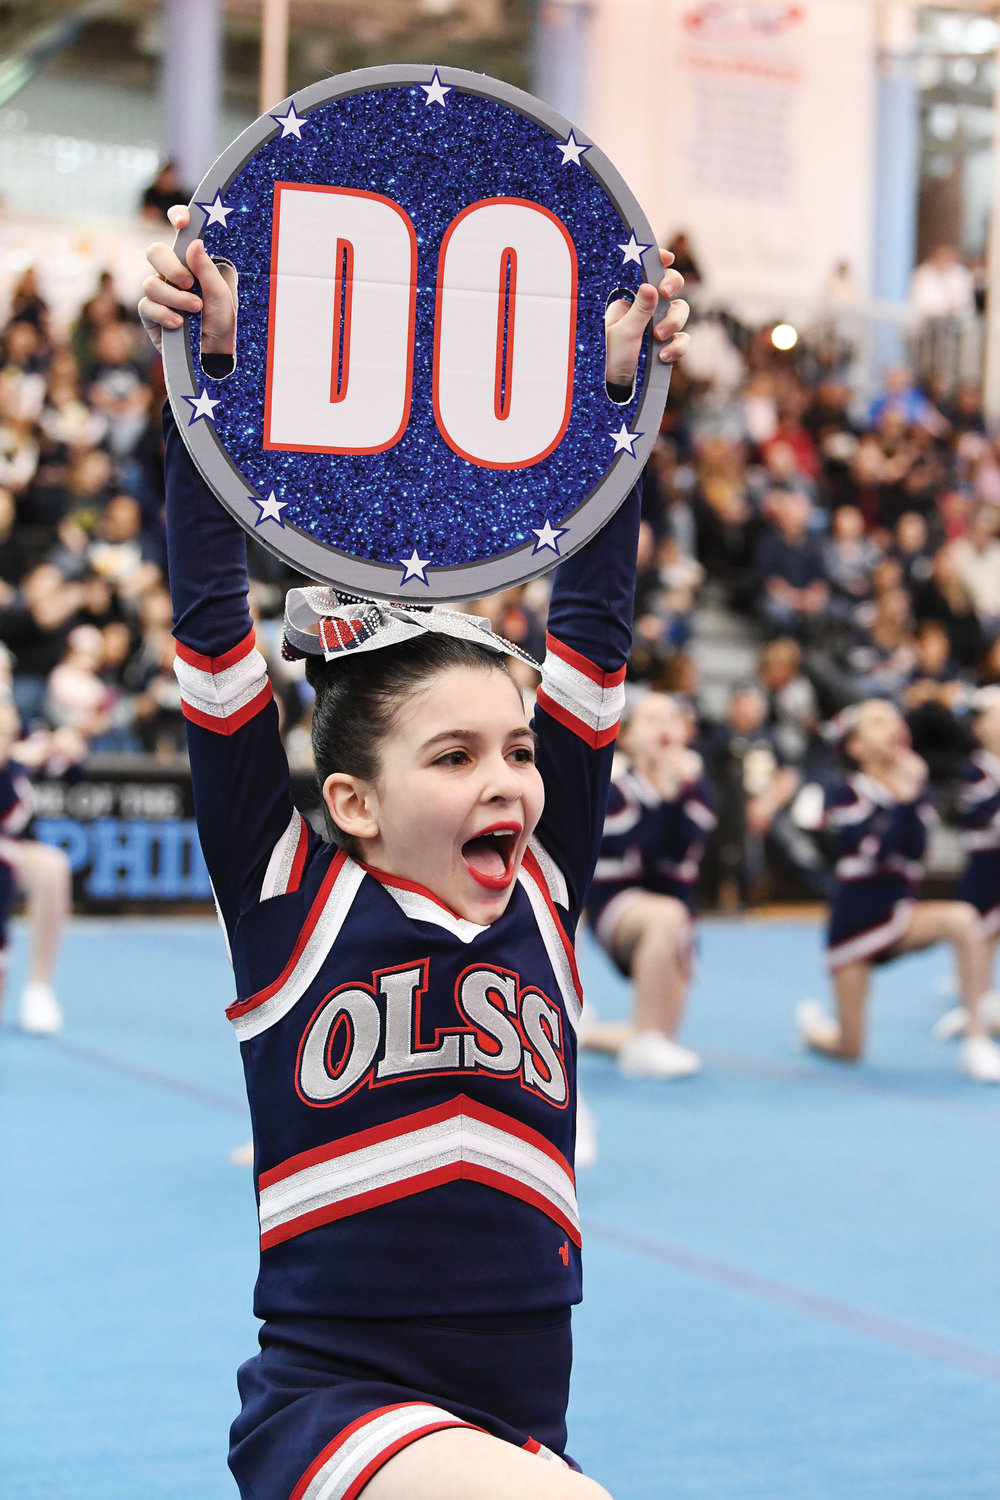 The girls from Our Lady Star of the Sea perform in the Debs Large division during the CYO New York archdiocesan cheerleading championships at the College of Staten Island March 23.